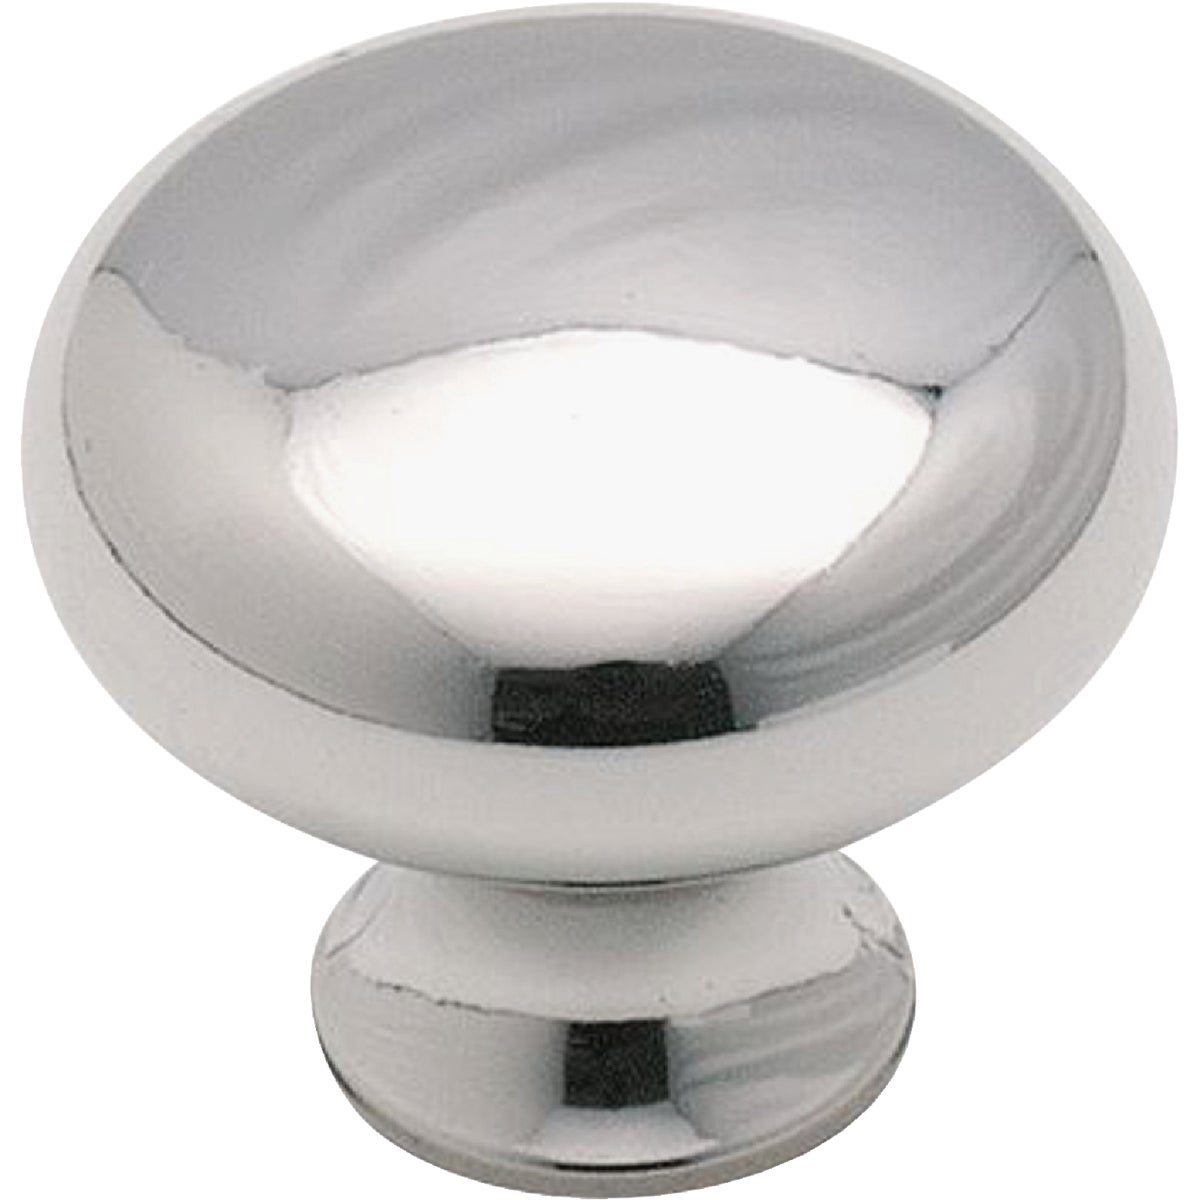 "1-3/16"" CHR COMMEMM KNOB - BP853-26 by Amerock Corporation"